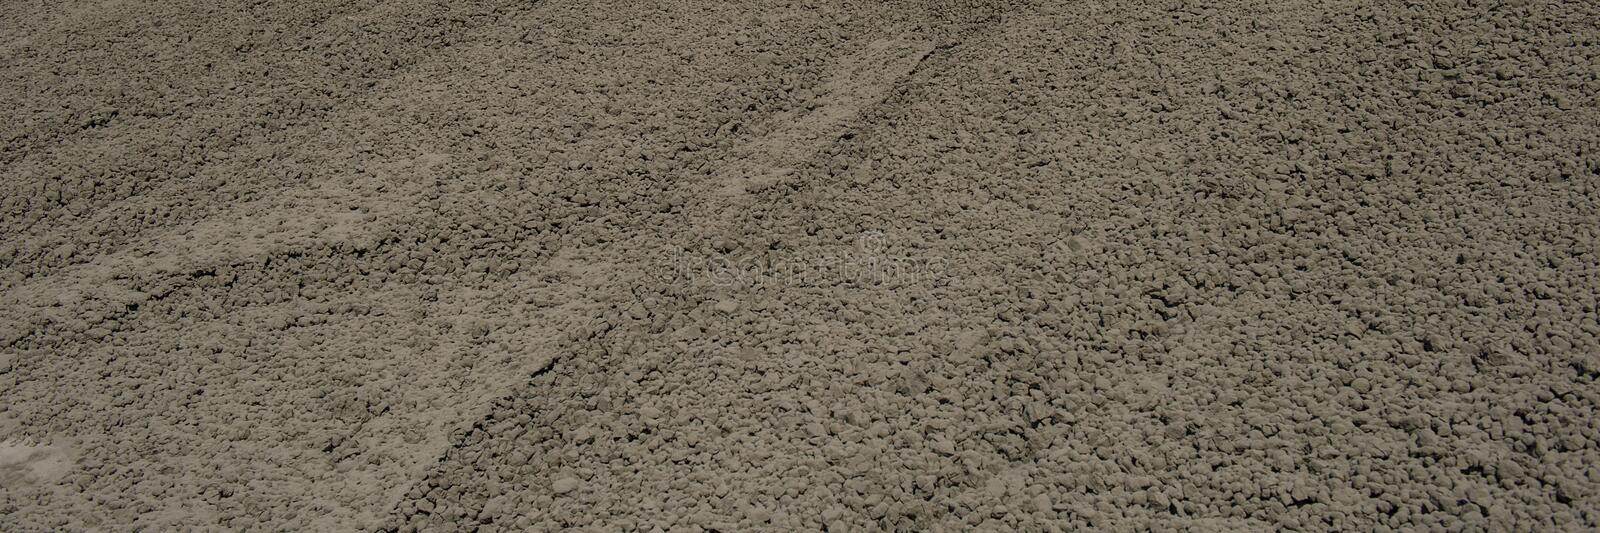 Clinker surface in a raw material warehouse, cement production. Web banner for your design royalty free stock photos